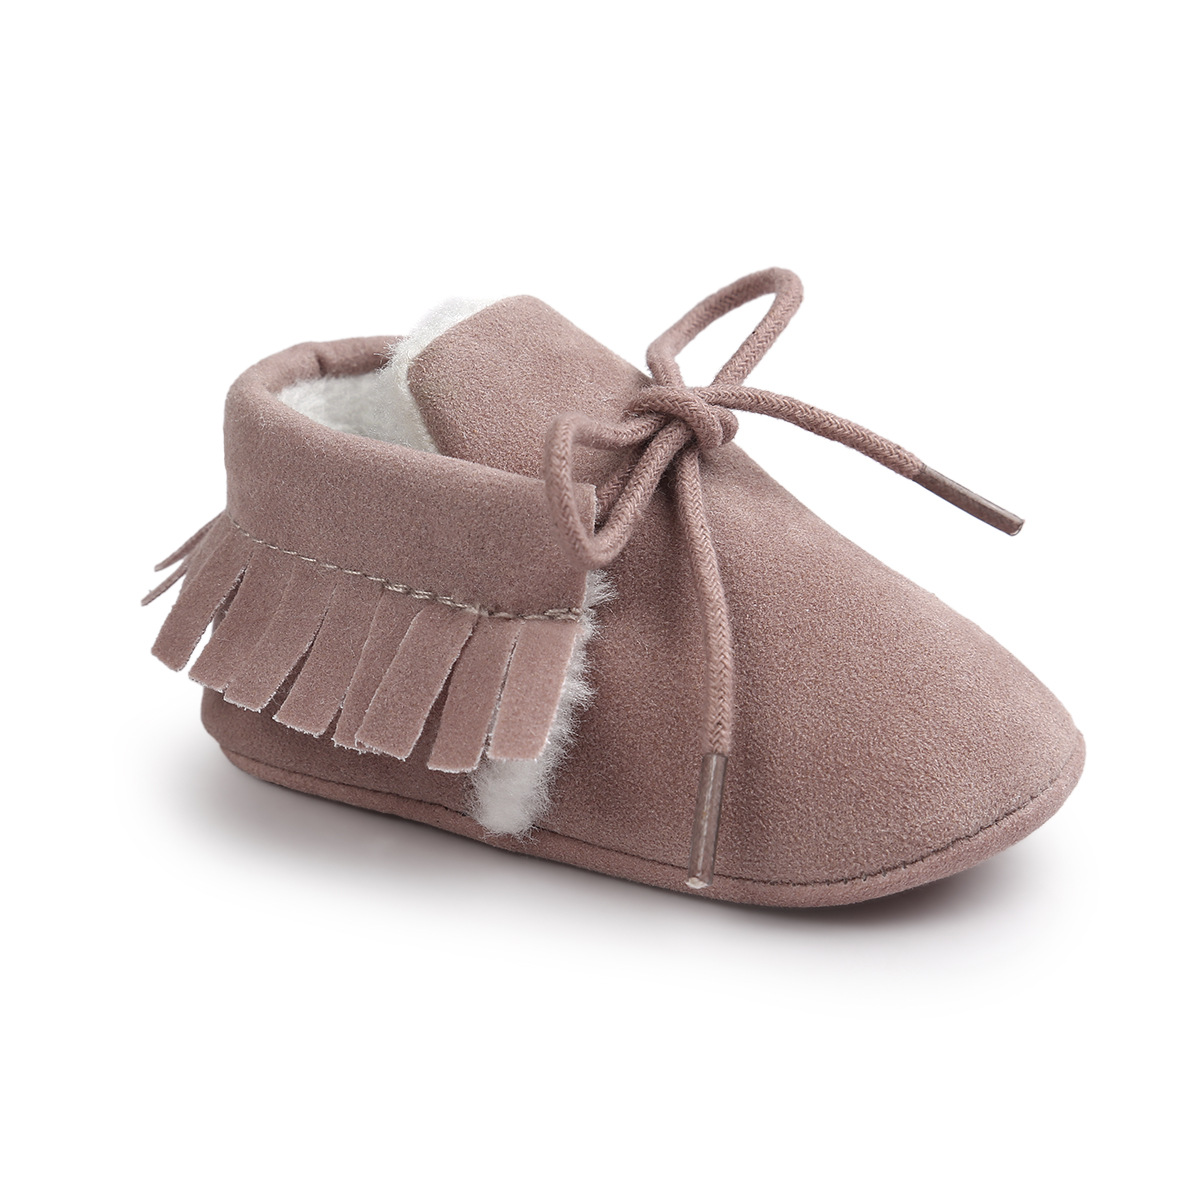 Autumn And Winter Baby Fashion Shoes Matte Texture Soft Bottom Baby Winter Shoes Tassel Toddler Sweet